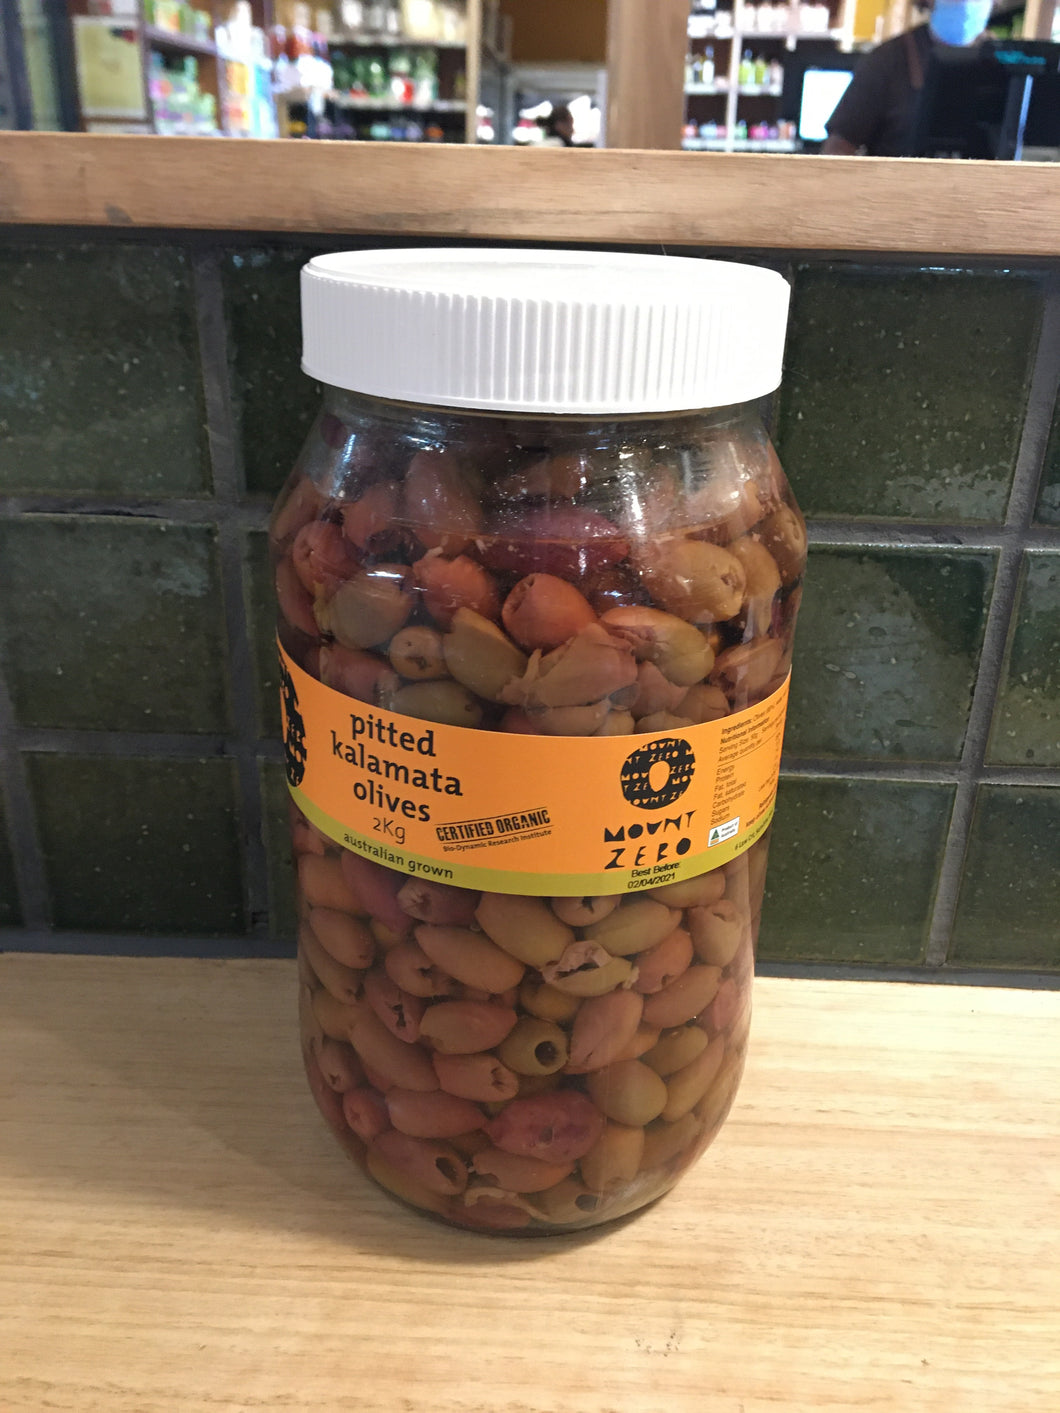 Mount Zero Olives - Kalamata Pitted 2kg